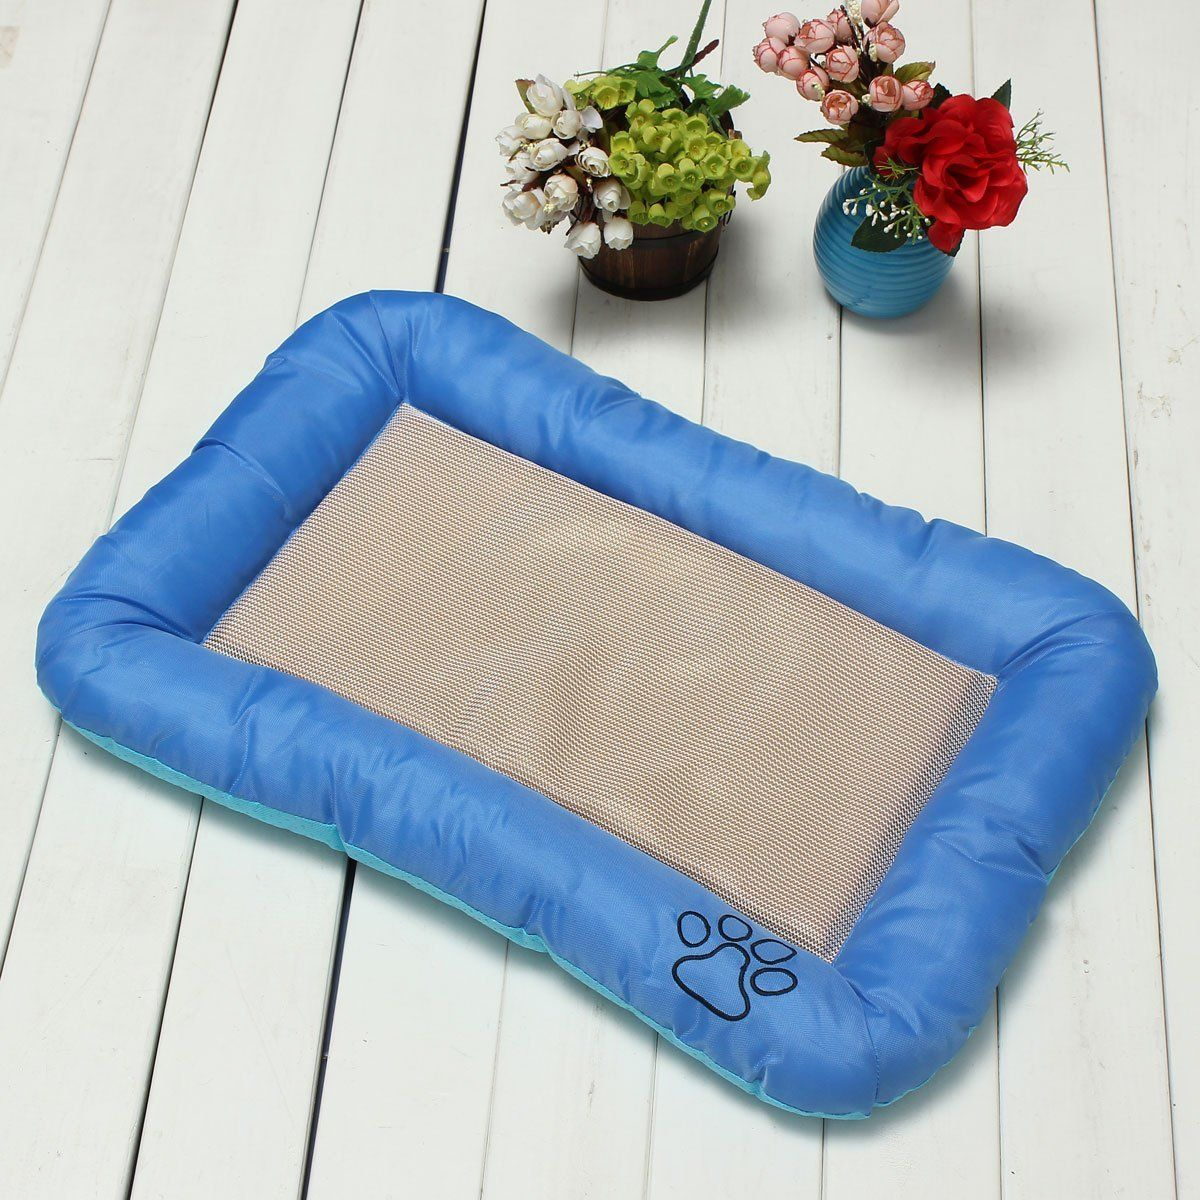 S Ice Silk Puppy Dog Cat Pet Sleep Seat Bed Summer Cooling